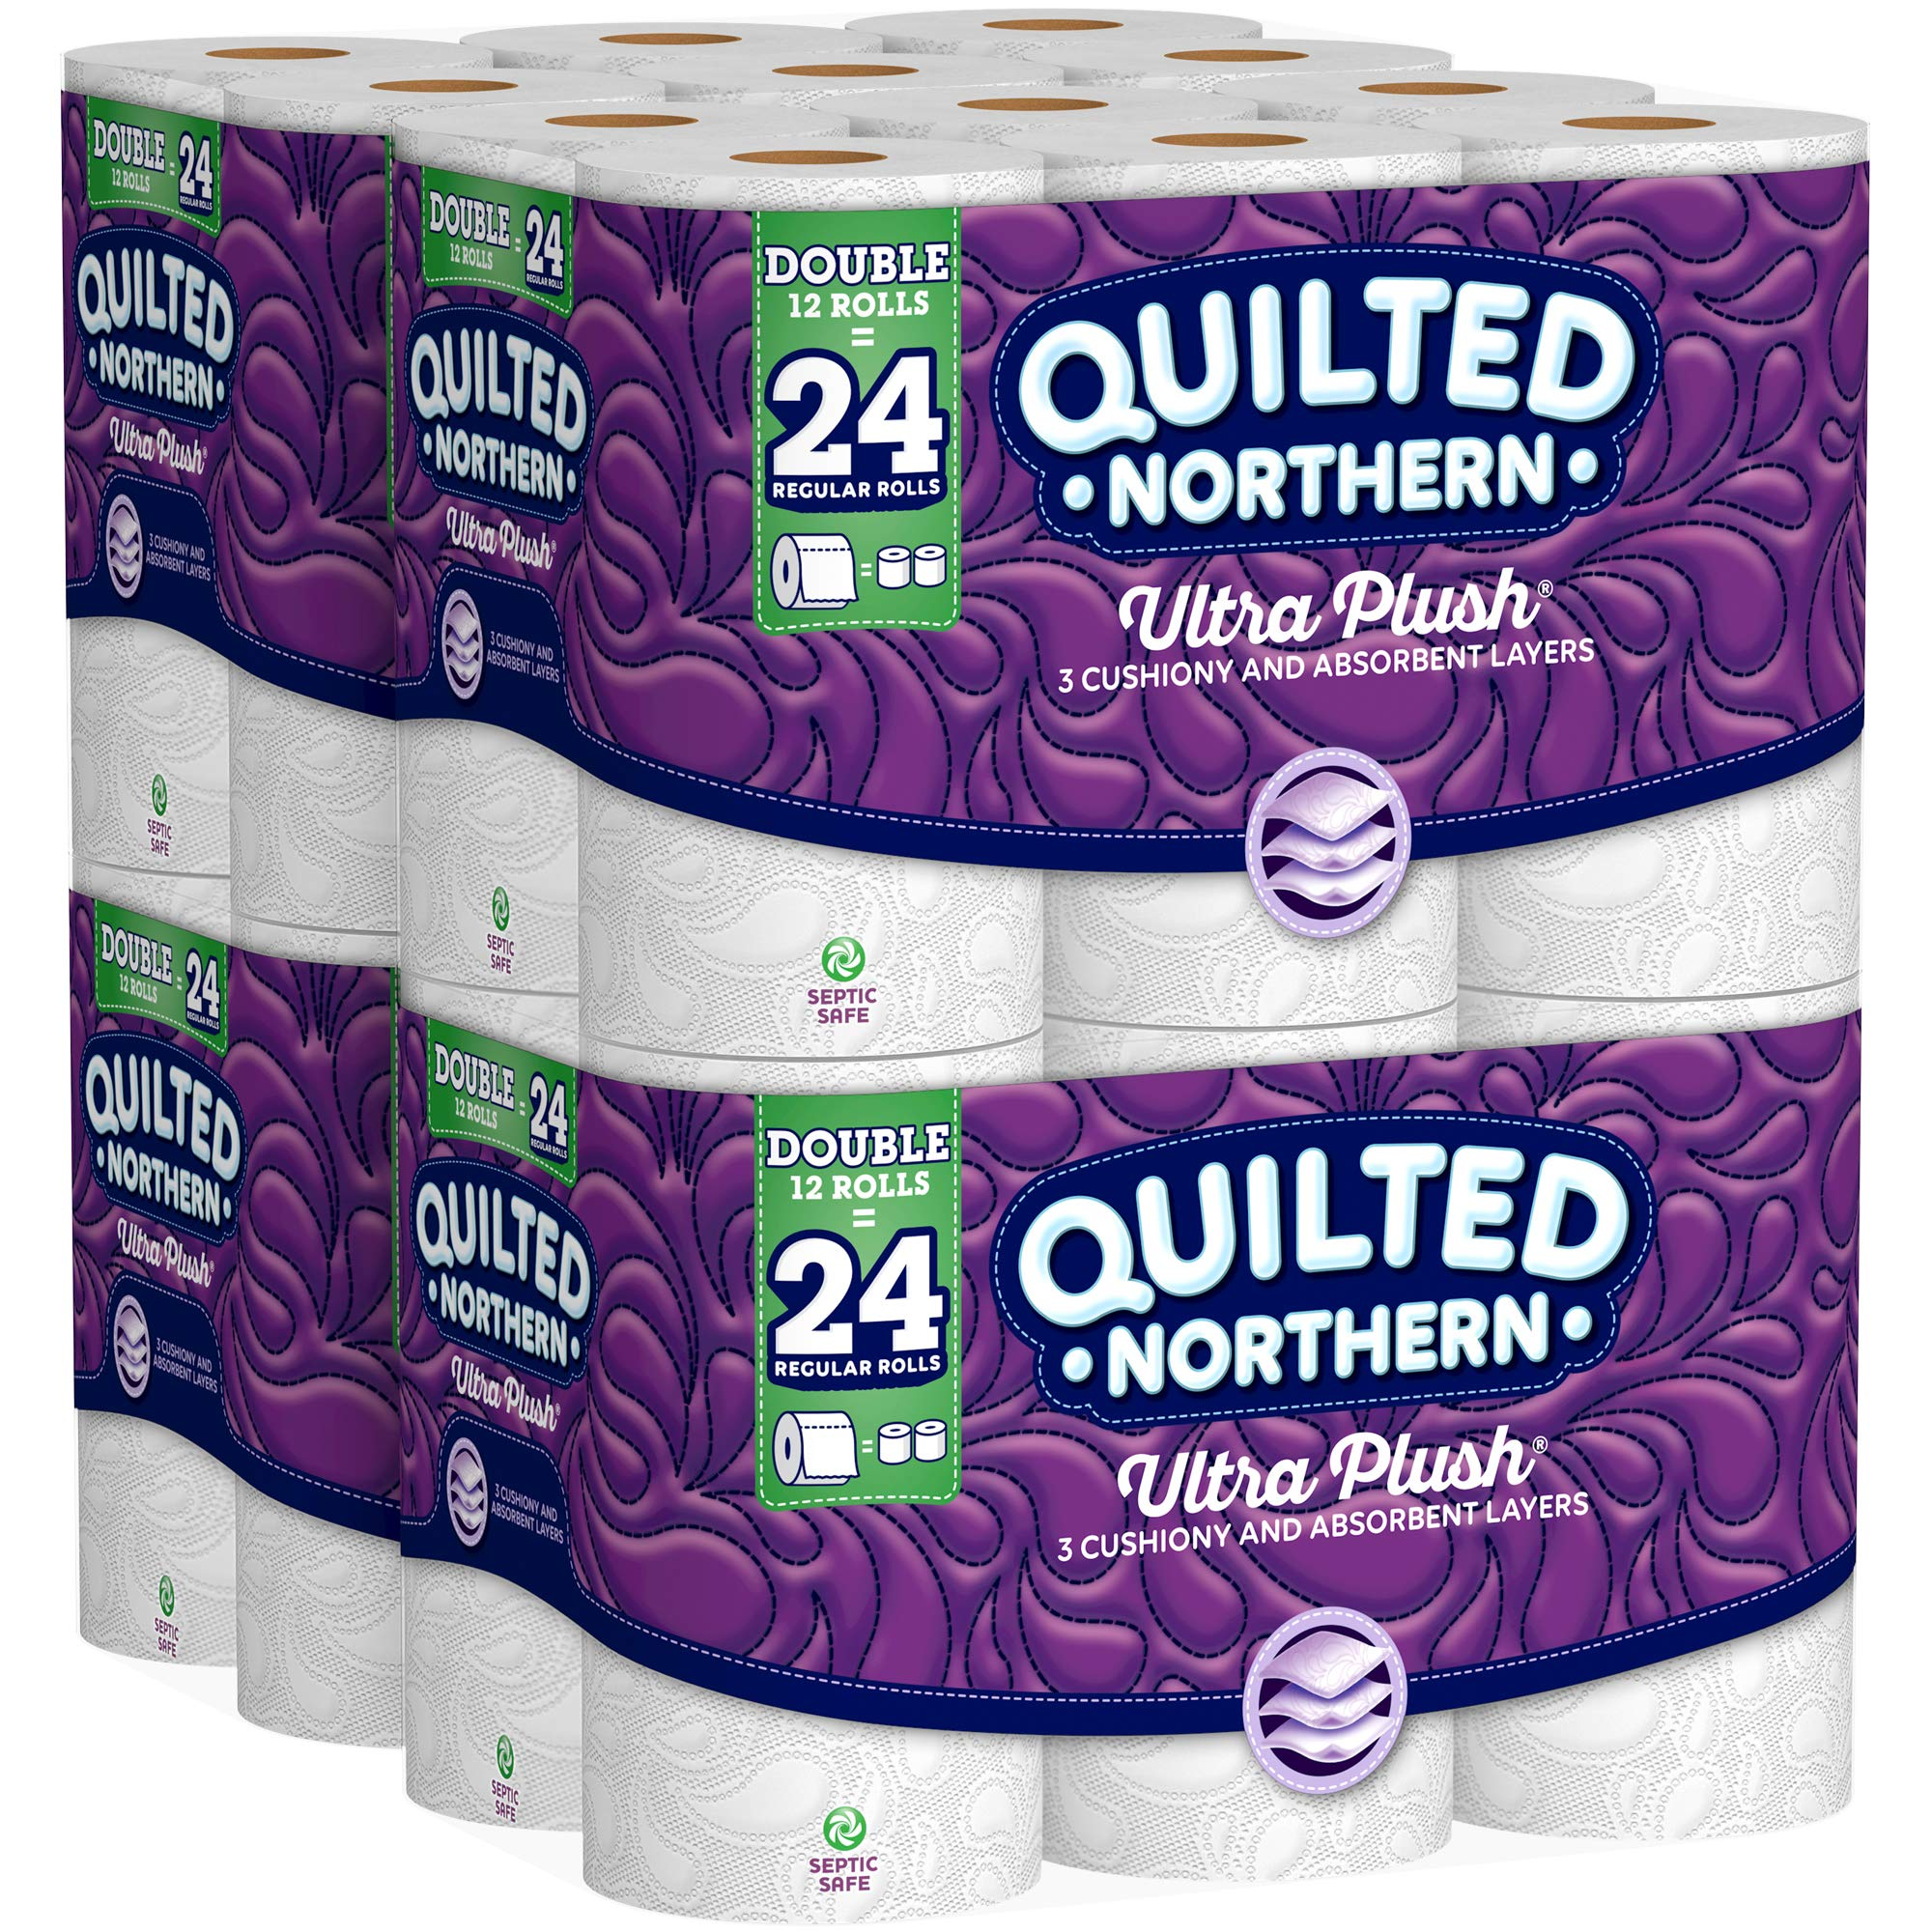 Quilted Northern Ultra Plush Toilet Paper, Pack of 48 Double Rolls (Four 12-roll packages), Equivalent to 96 Regular Rolls-Packaging May Vary